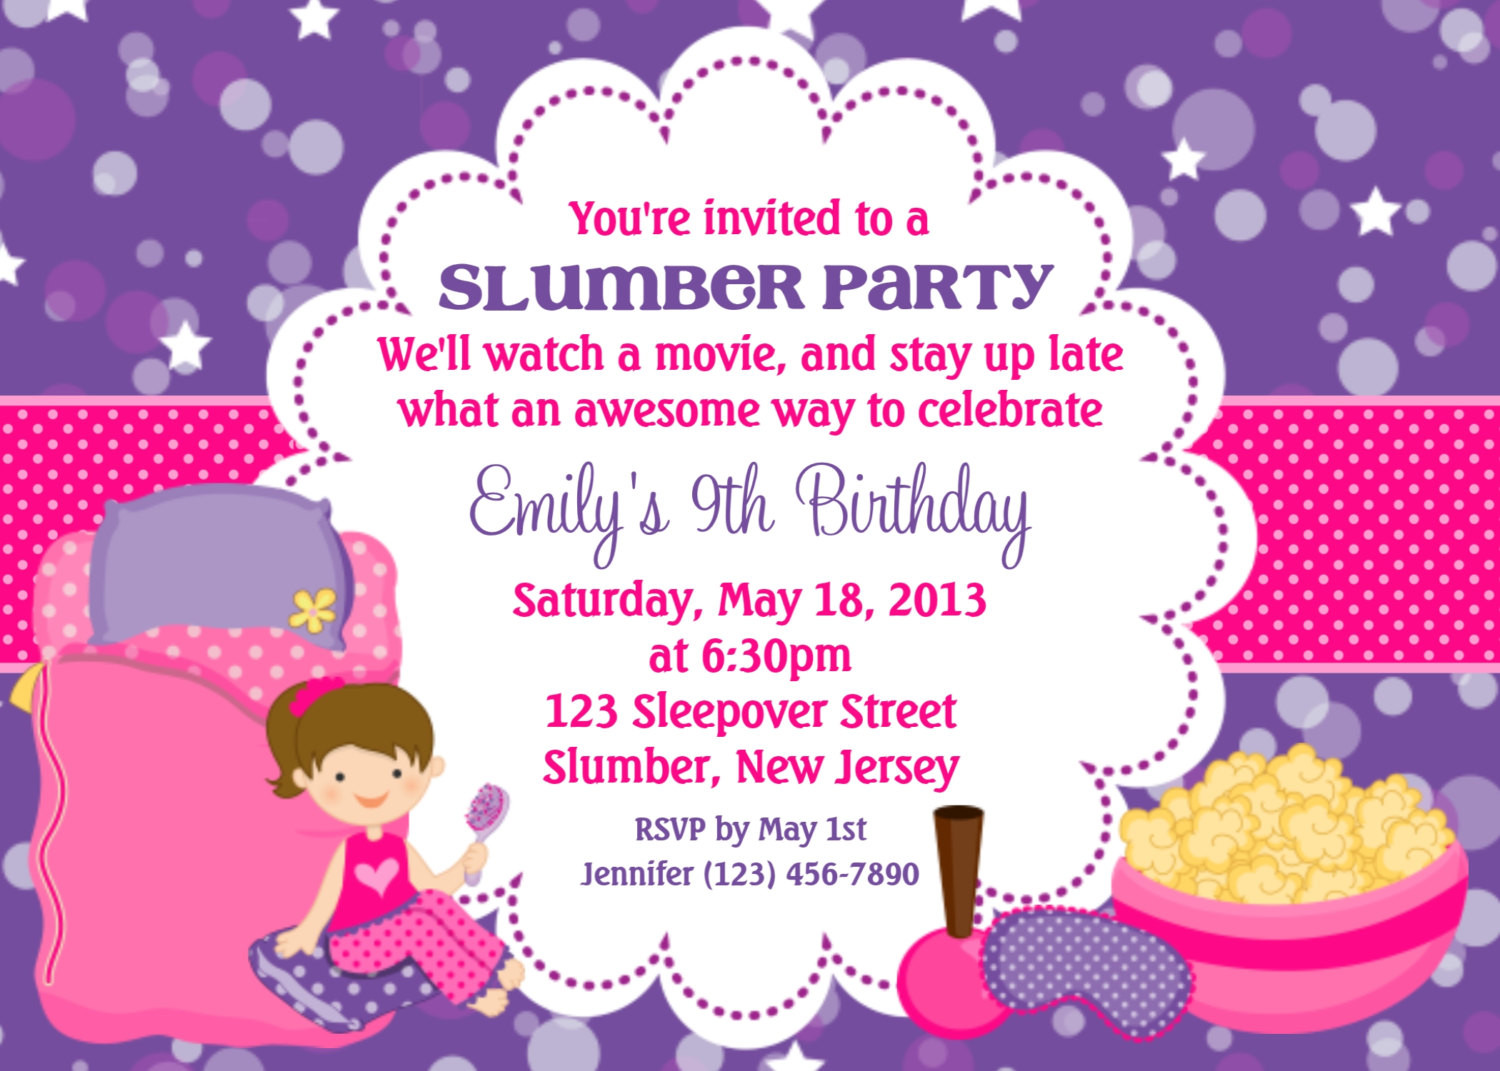 Best ideas about Custom Birthday Party Invitations . Save or Pin Slumber Party Invitation Personalized Custom Sleepover Now.